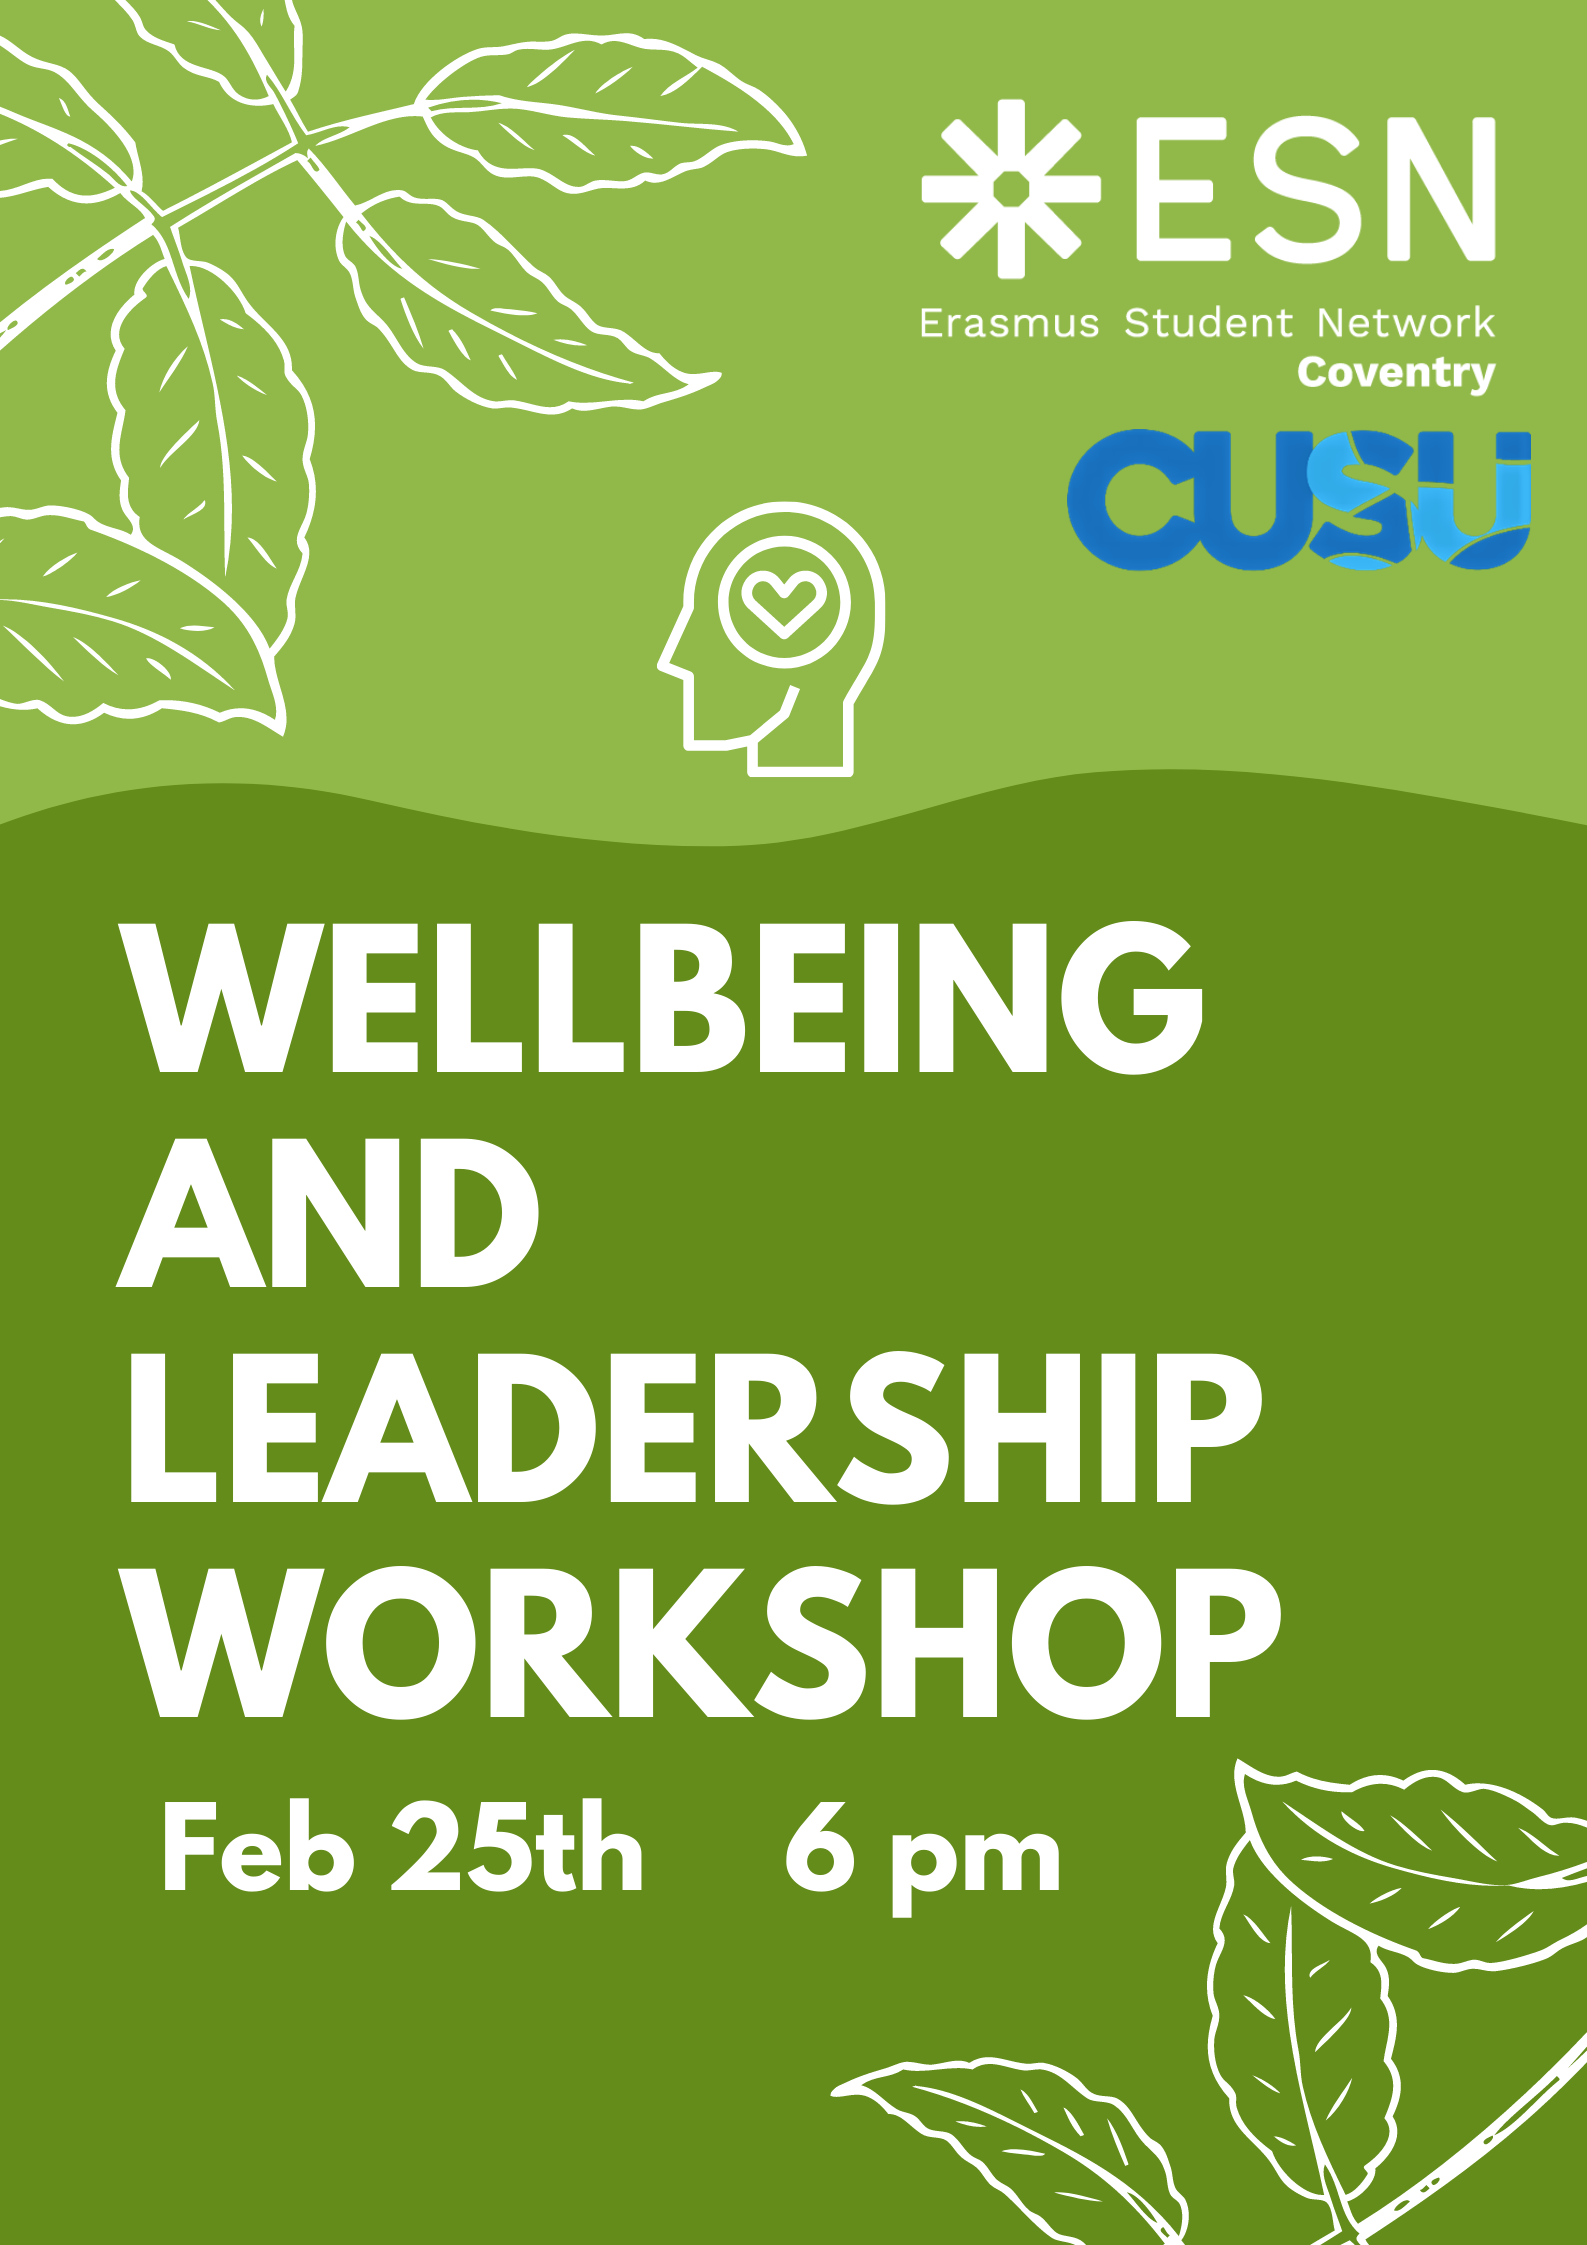 Wellbeing and Leadership Workshop